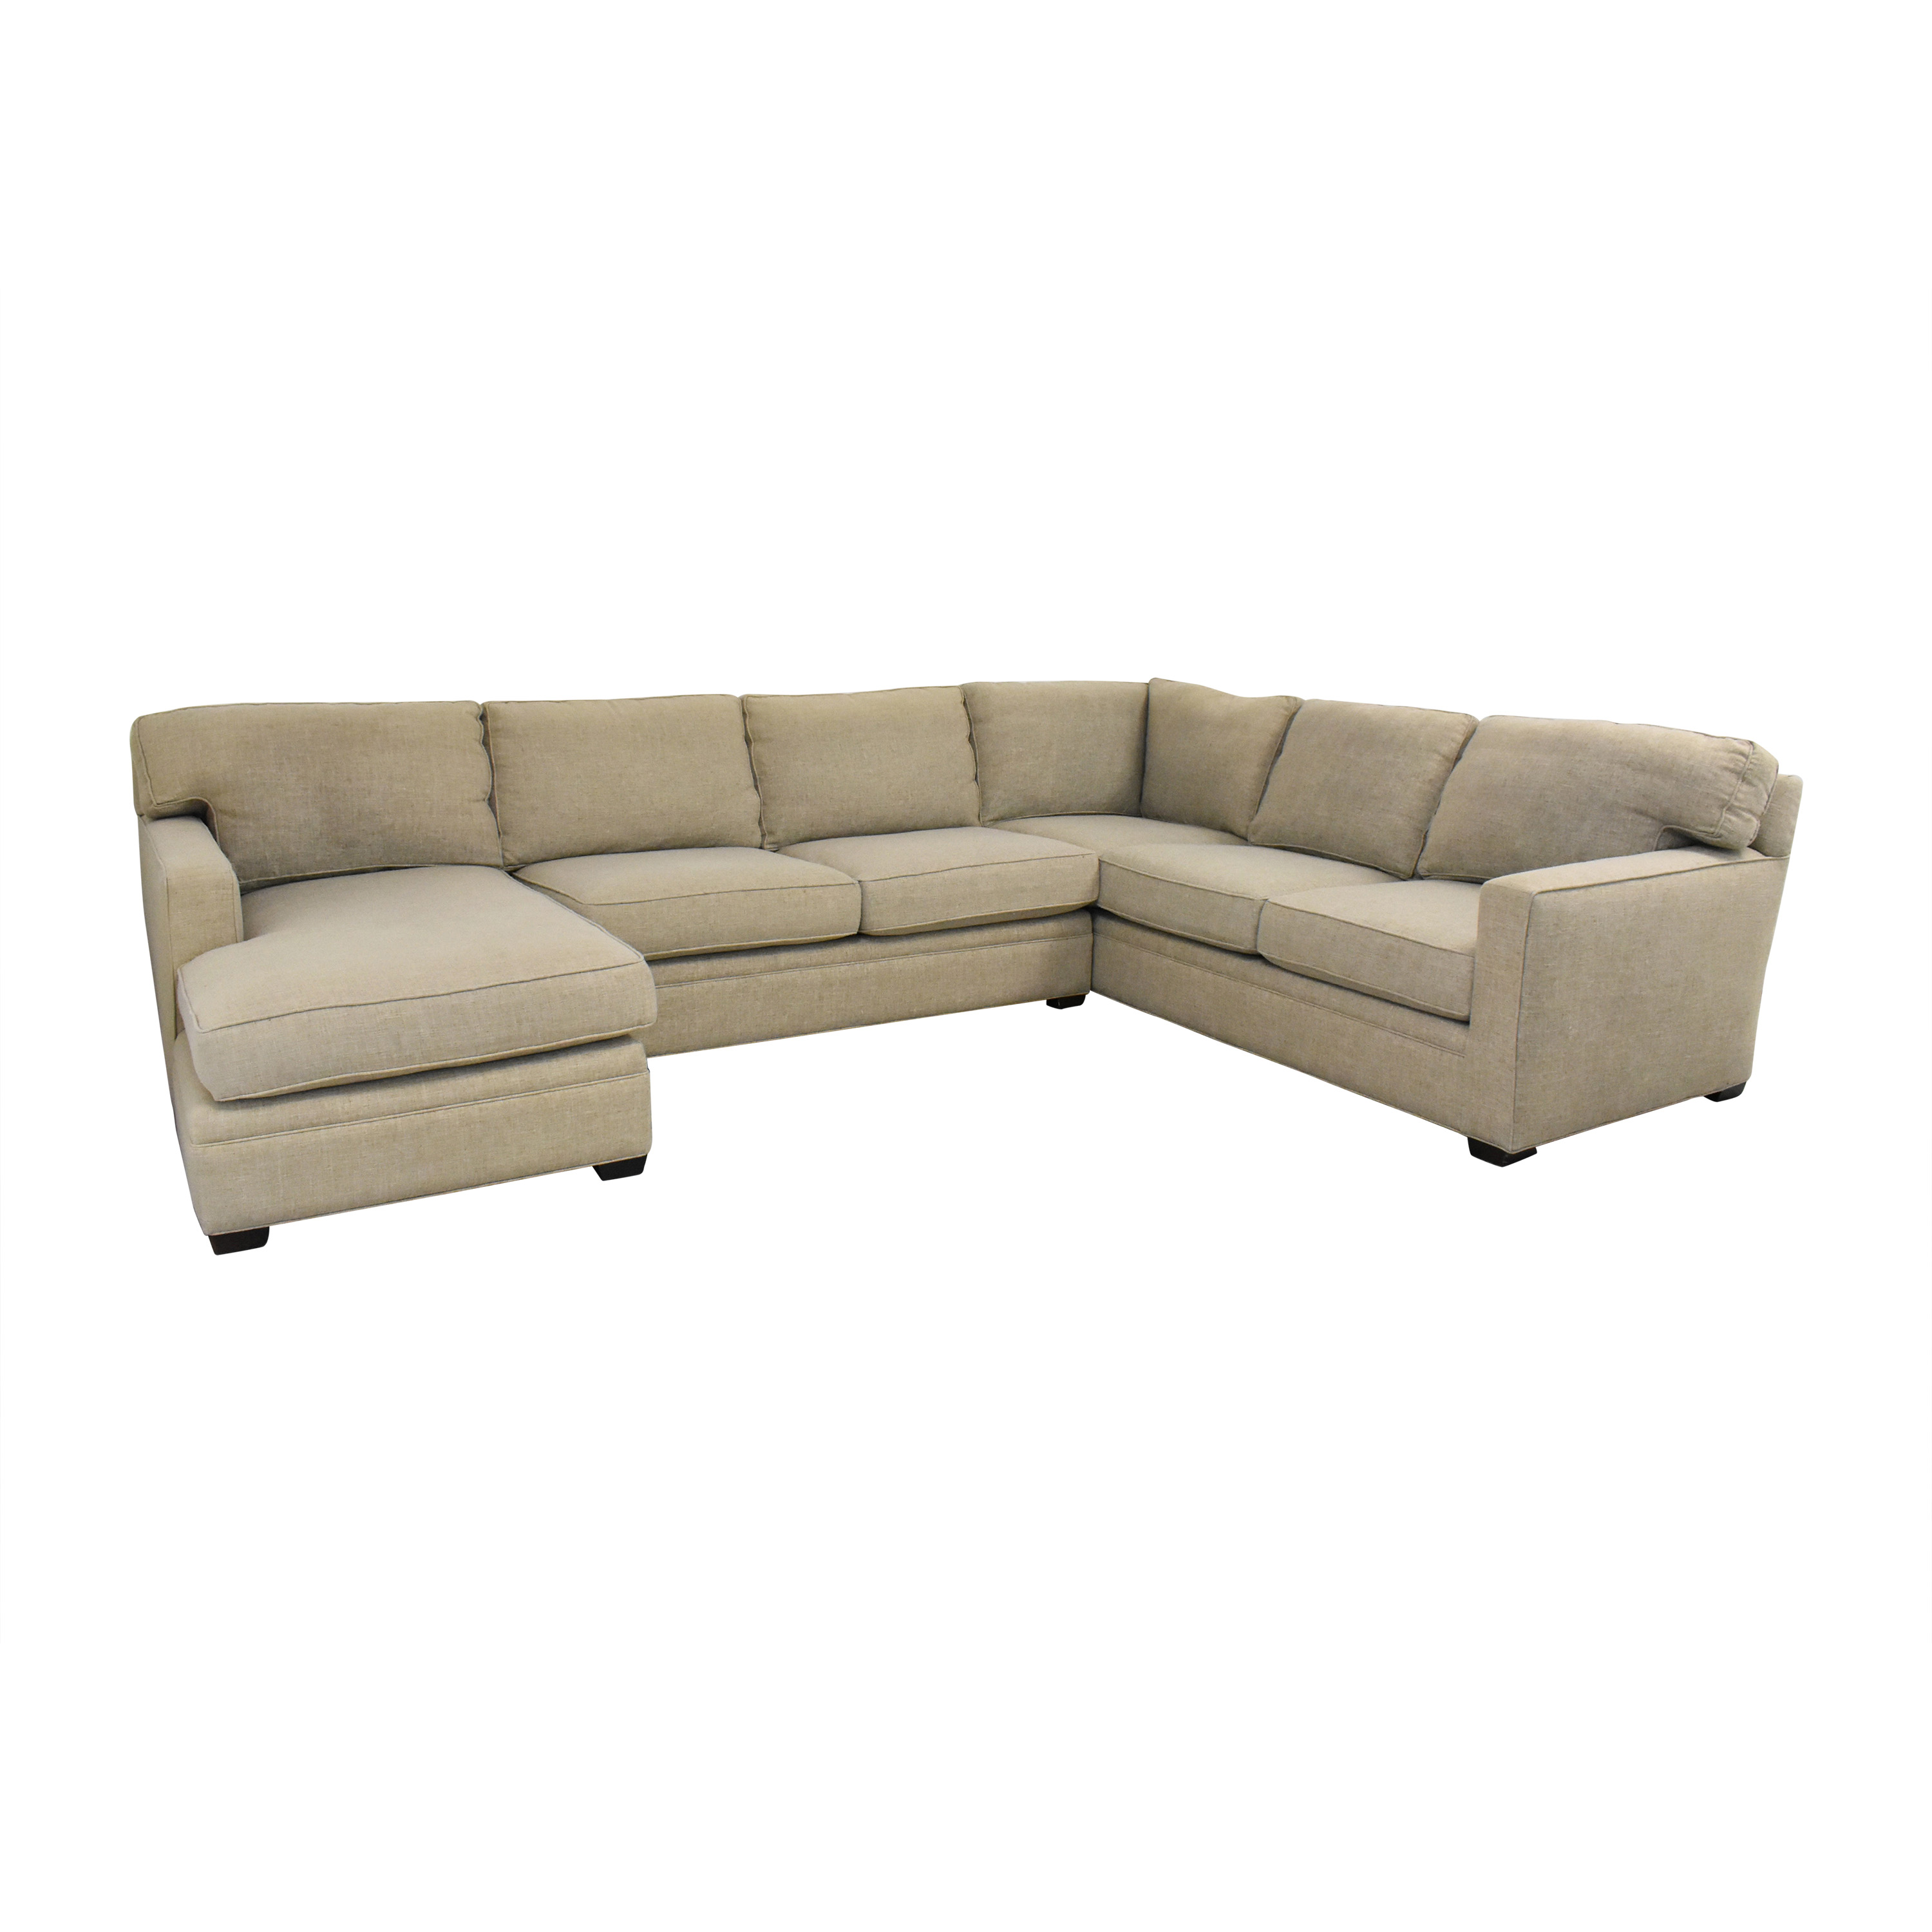 Lillian August Lillian August L Shaped Sectional Sofa with Chaise coupon